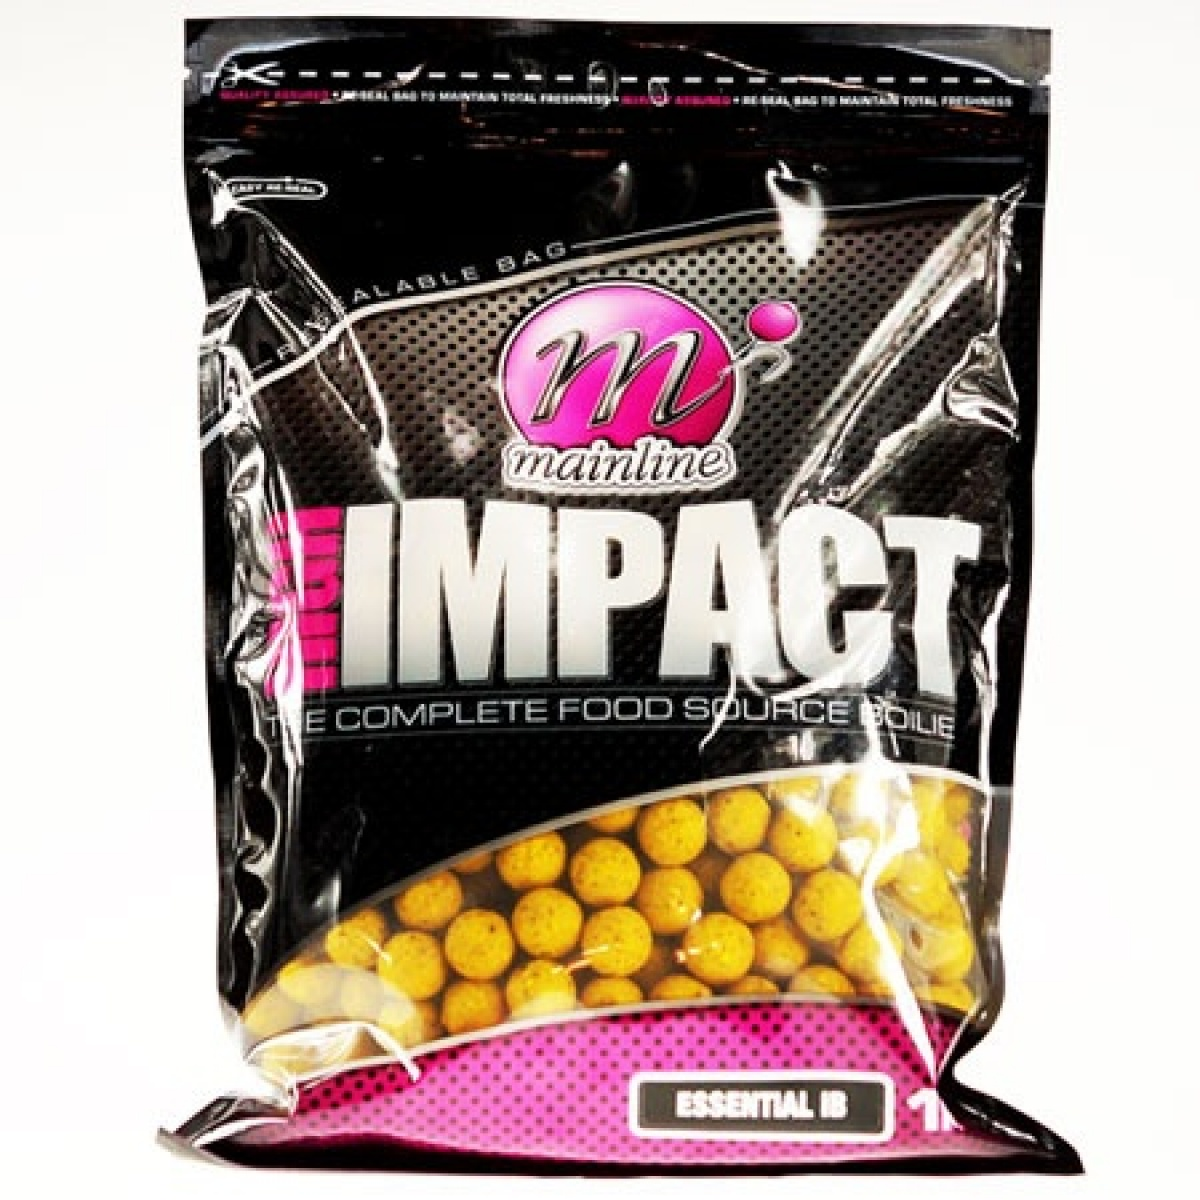 MAINLINE High Impact Essential IB Boilies rozmiar 16 mm - 1 kg